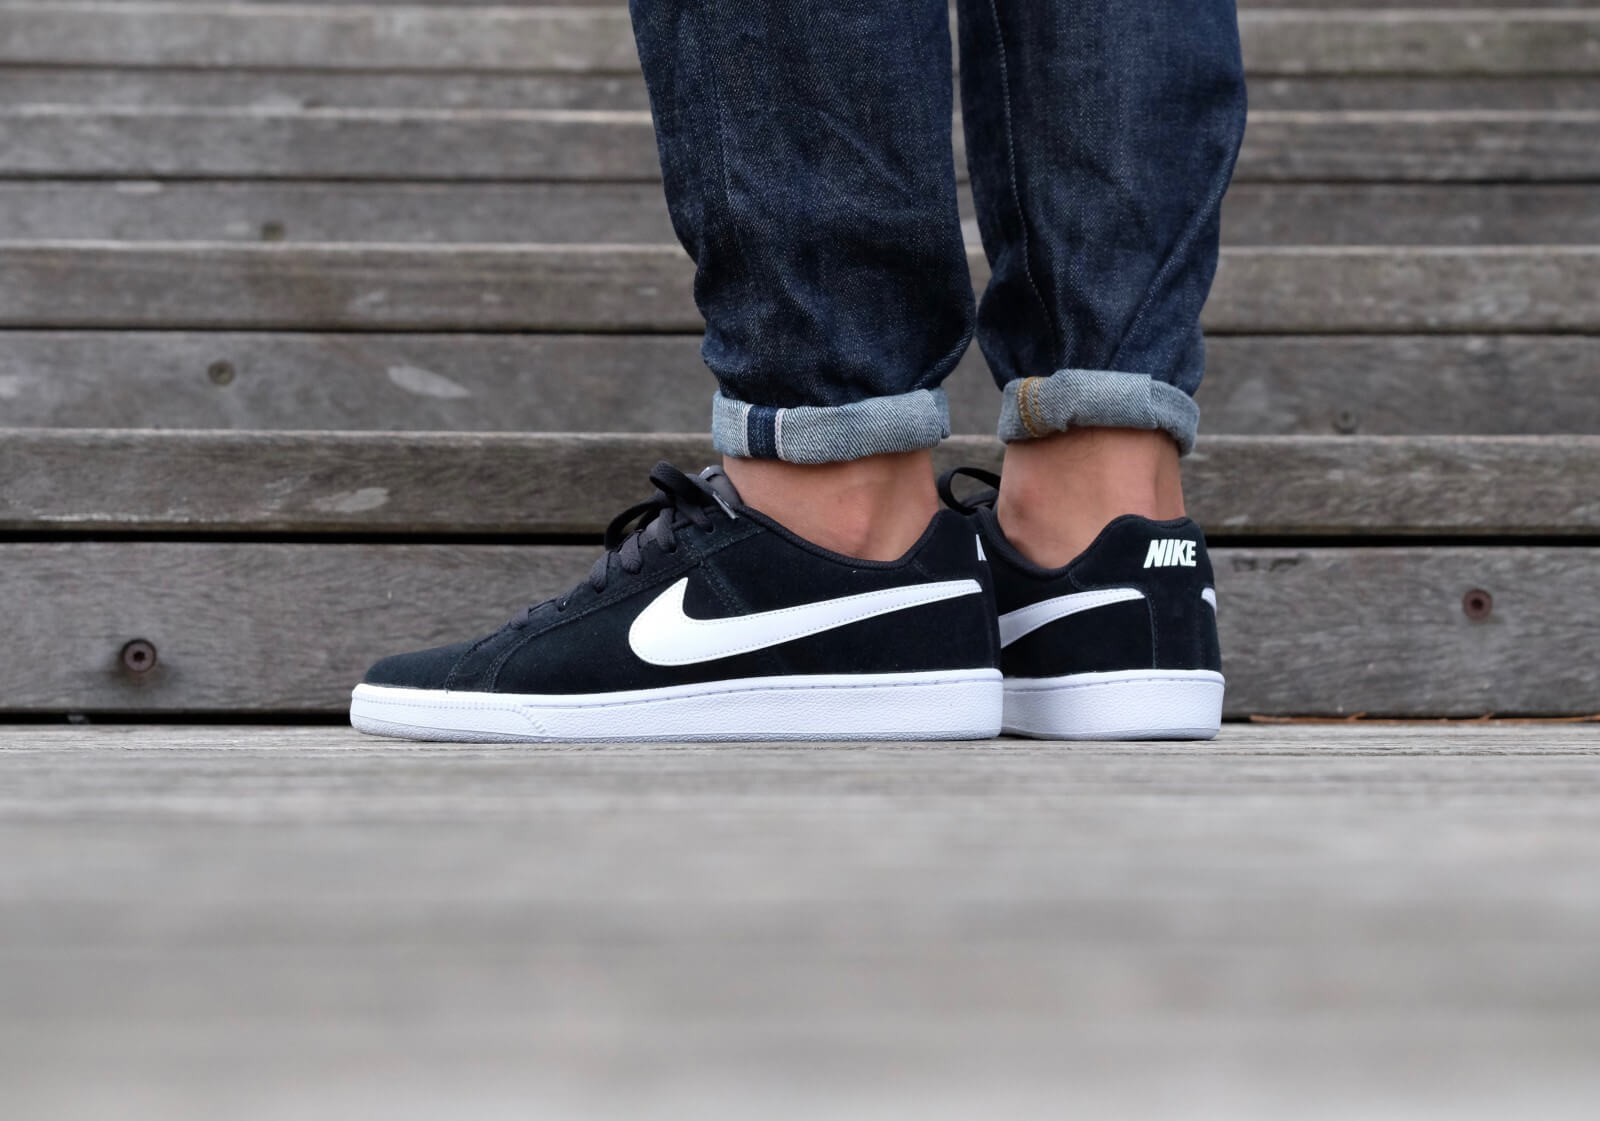 Nike Court Royale Suede Black White 819802 011